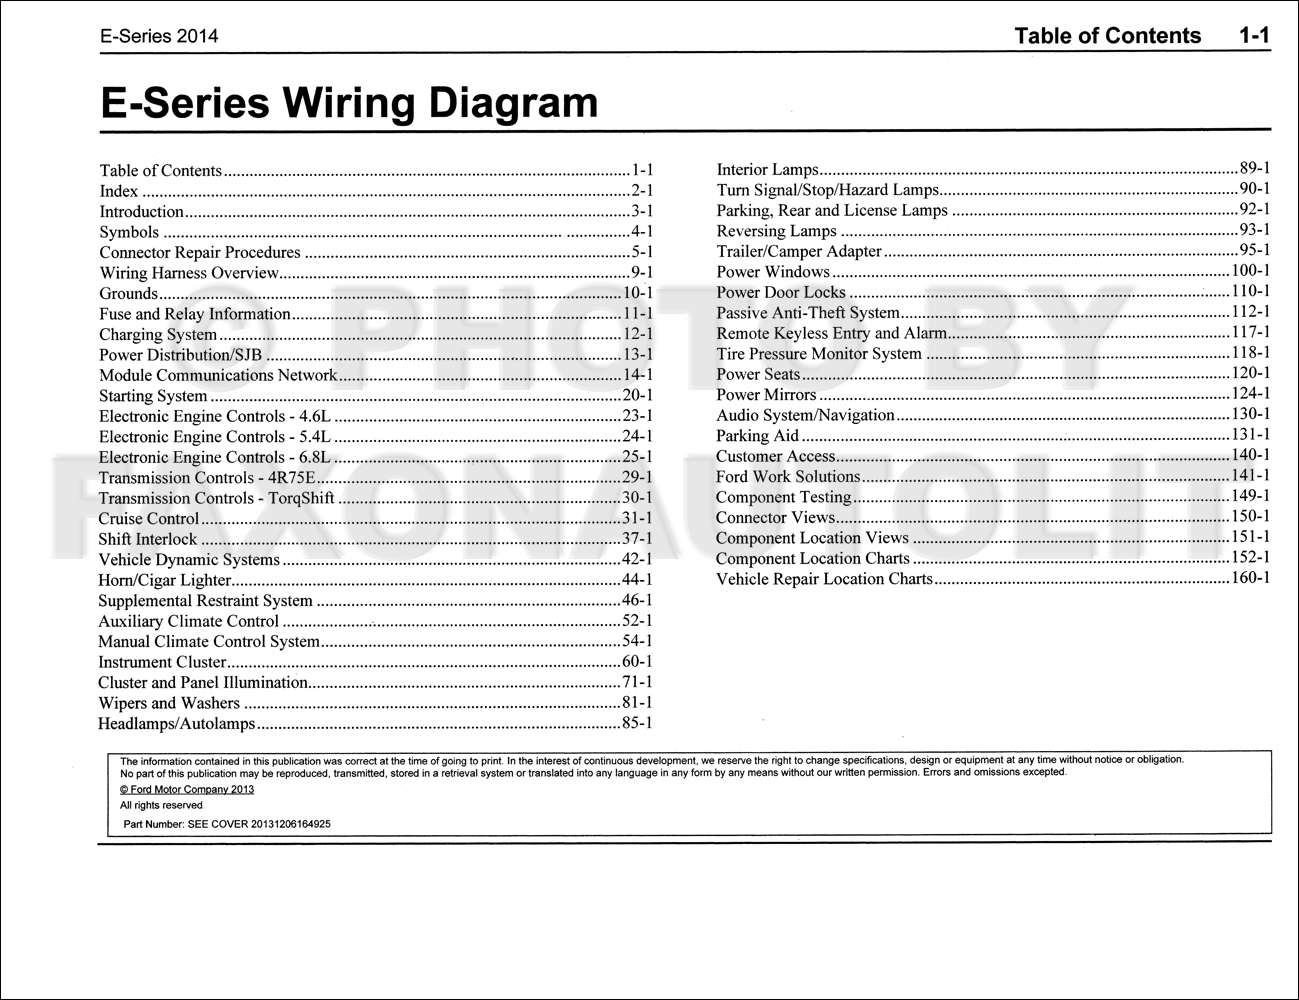 2002 ford econoline wiring diagram 2014 ford econoline wiring diagram manual original van ... 63 ford econoline wiring diagram